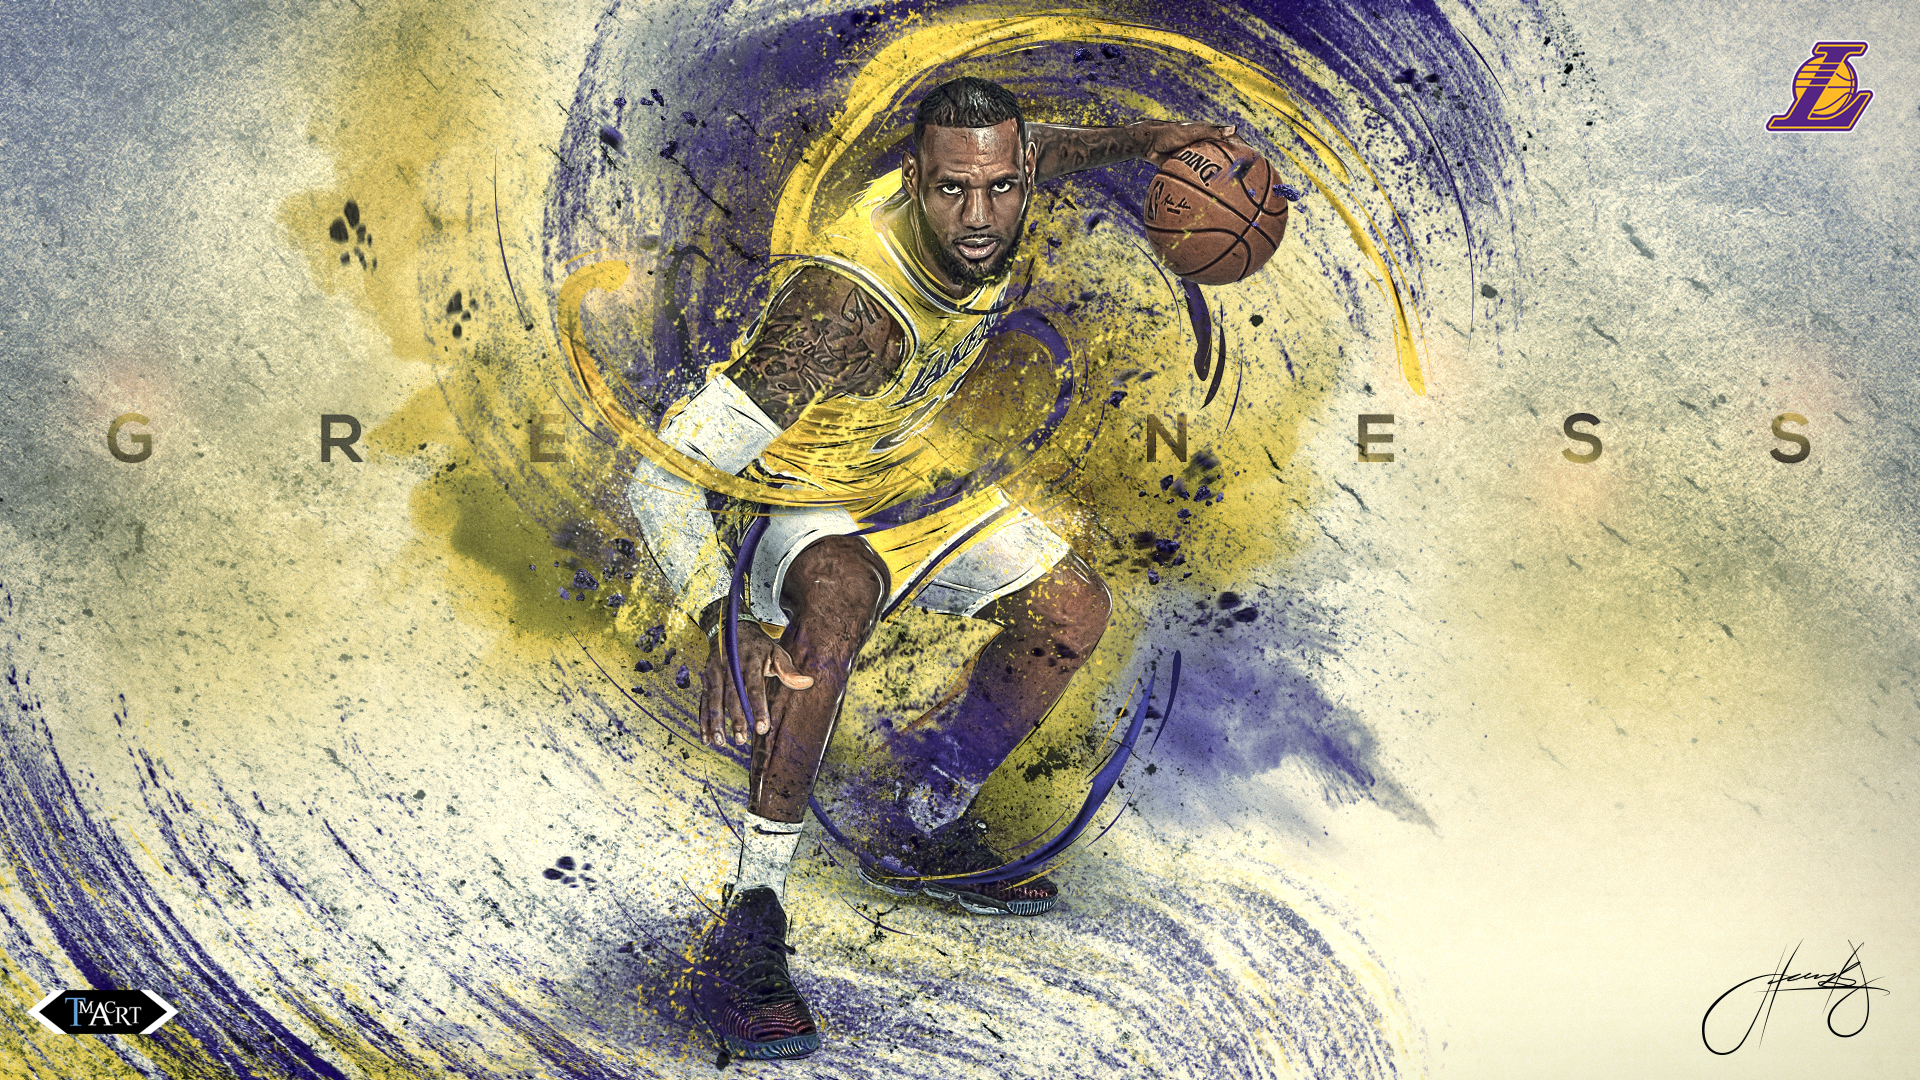 Lebron James L A Lakers Greatness Wallpaper B By Tmaclabi On Deviantart